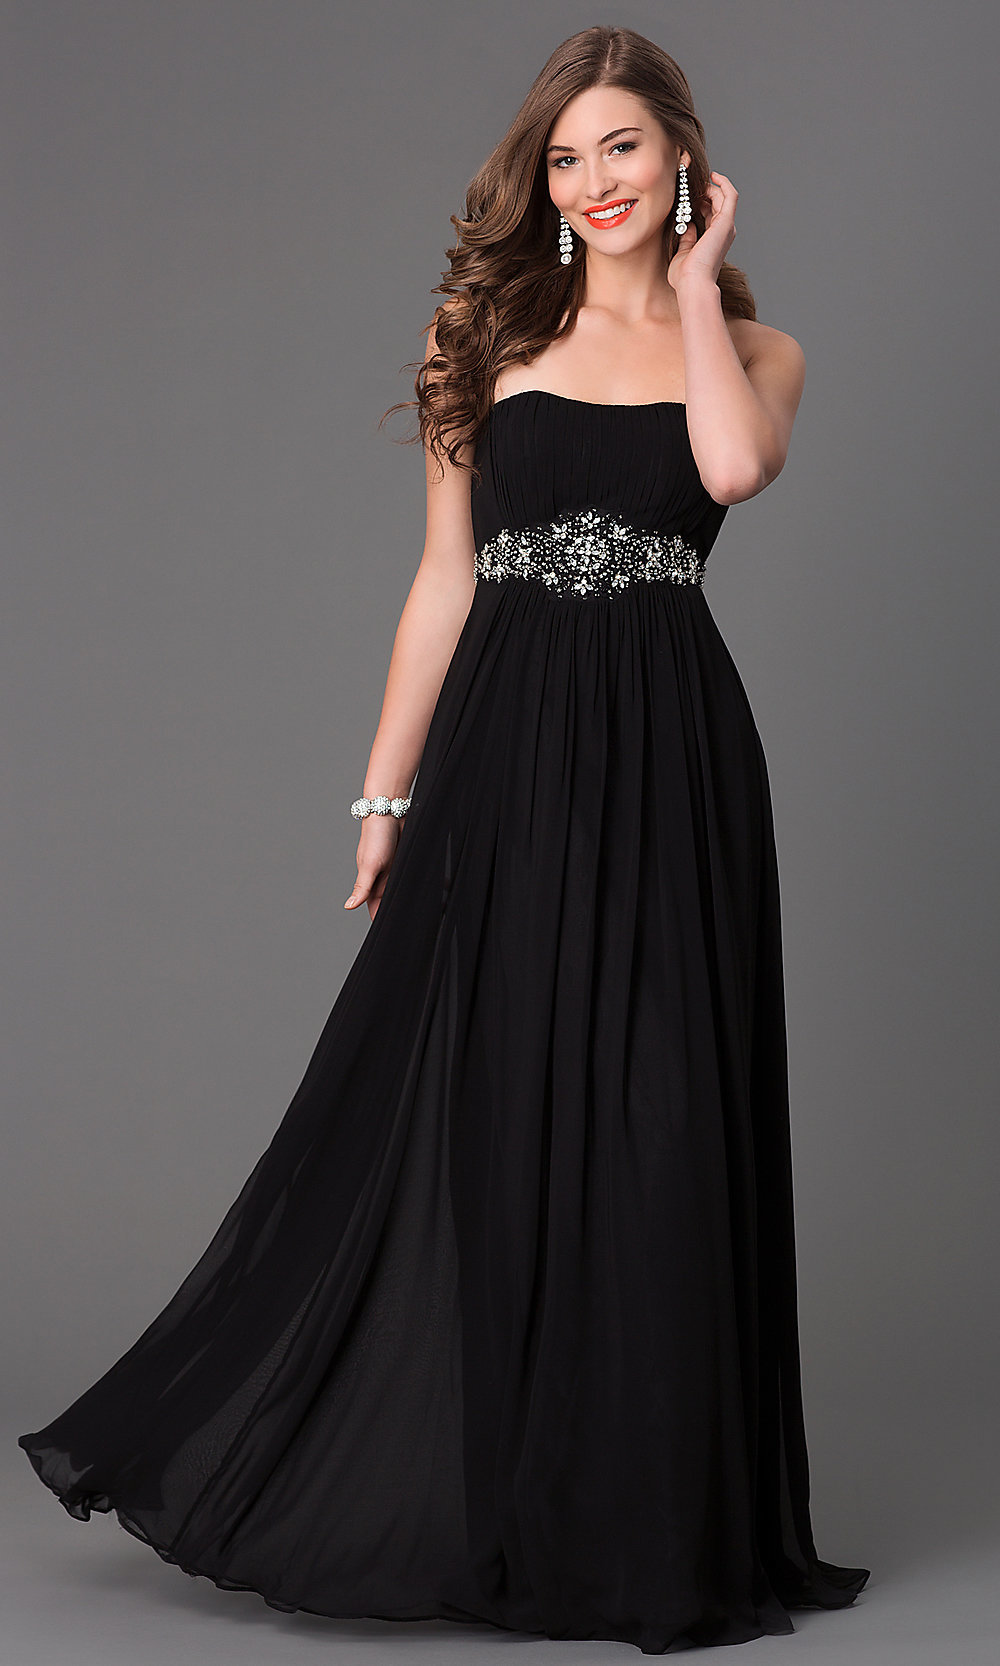 Classic Long Strapless Dress Strapless Evening Gowns- PromGirl